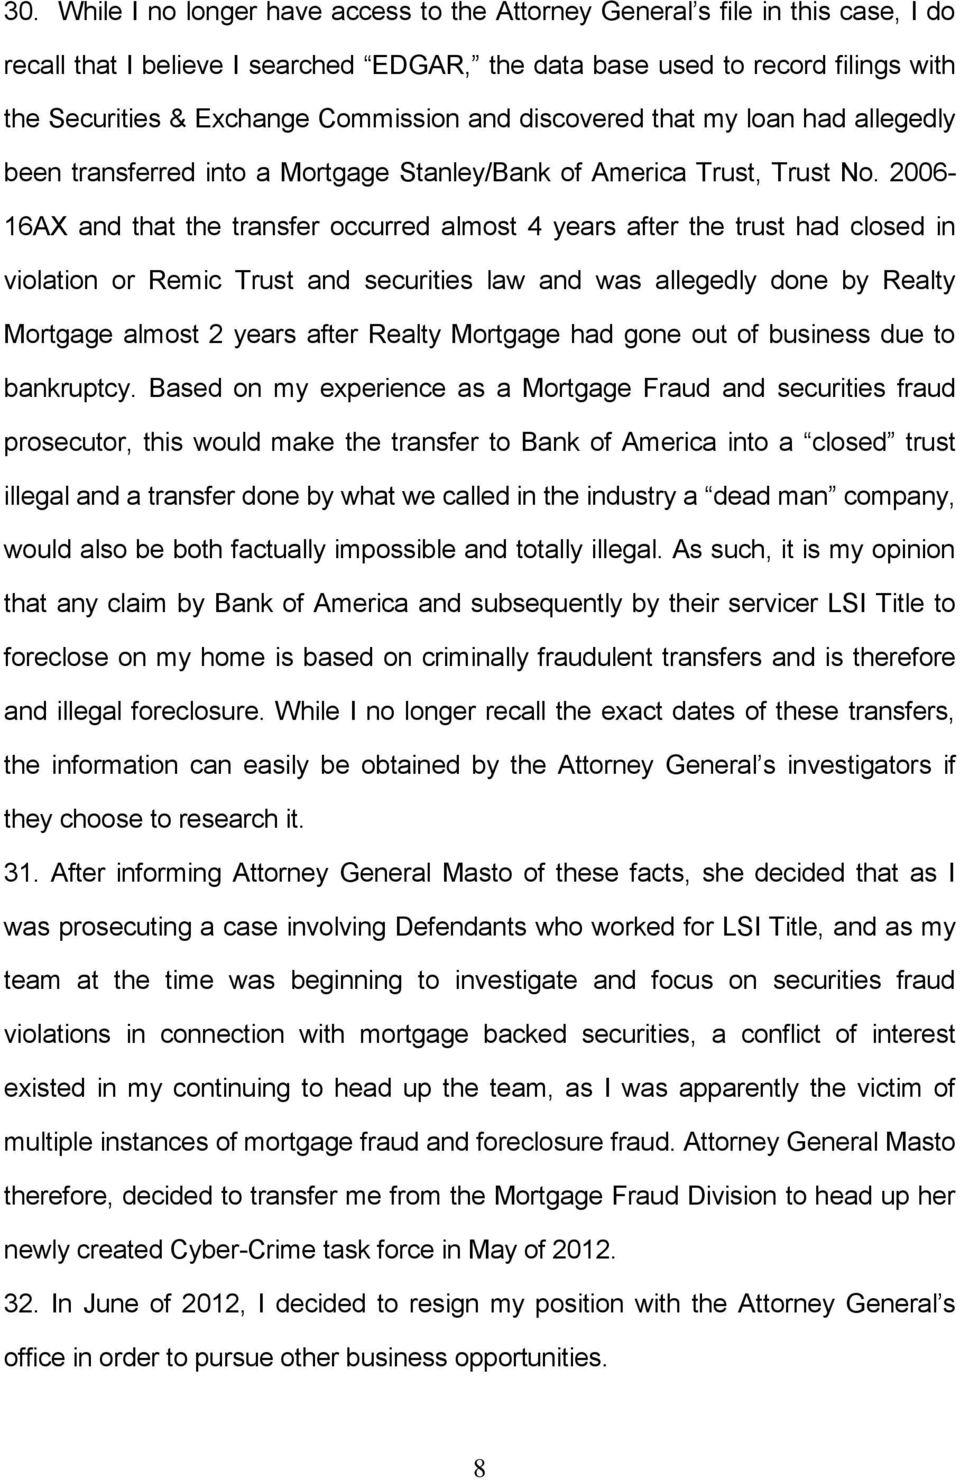 2006-16AX and that the transfer occurred almost 4 years after the trust had closed in violation or Remic Trust and securities law and was allegedly done by Realty Mortgage almost 2 years after Realty